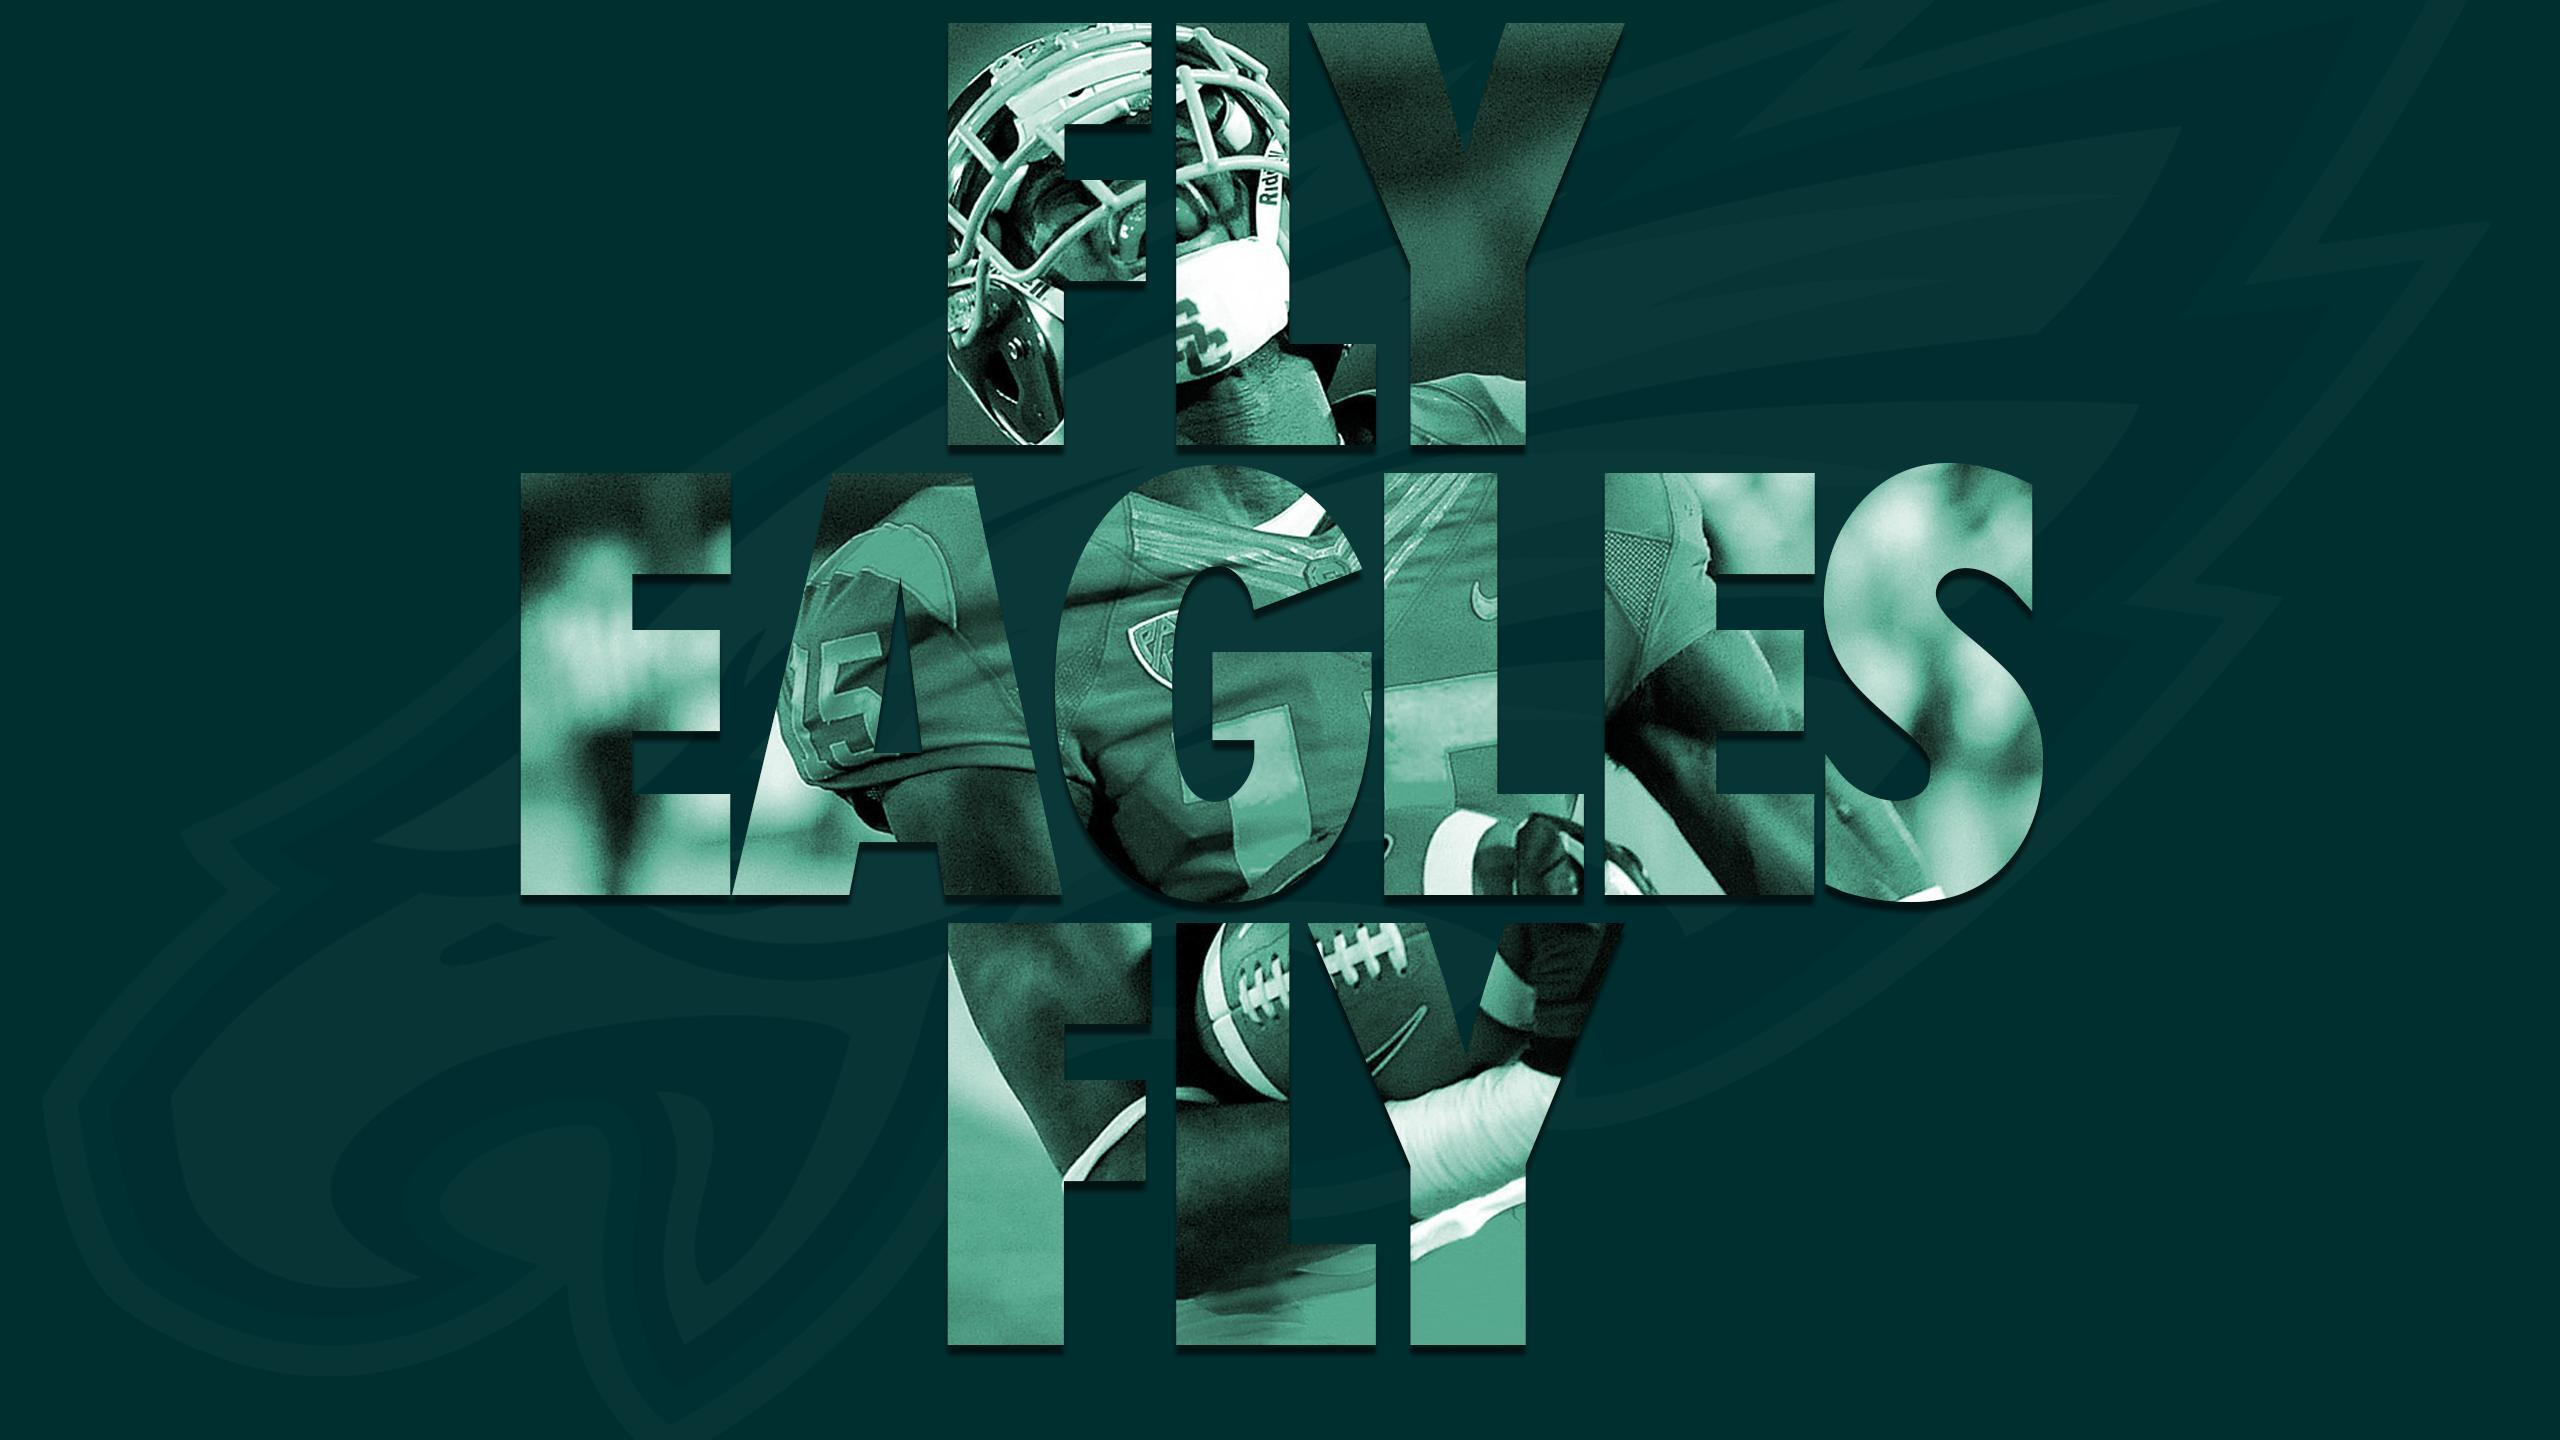 Eagles Nike Wallpapers-Rookie Edition : eagles